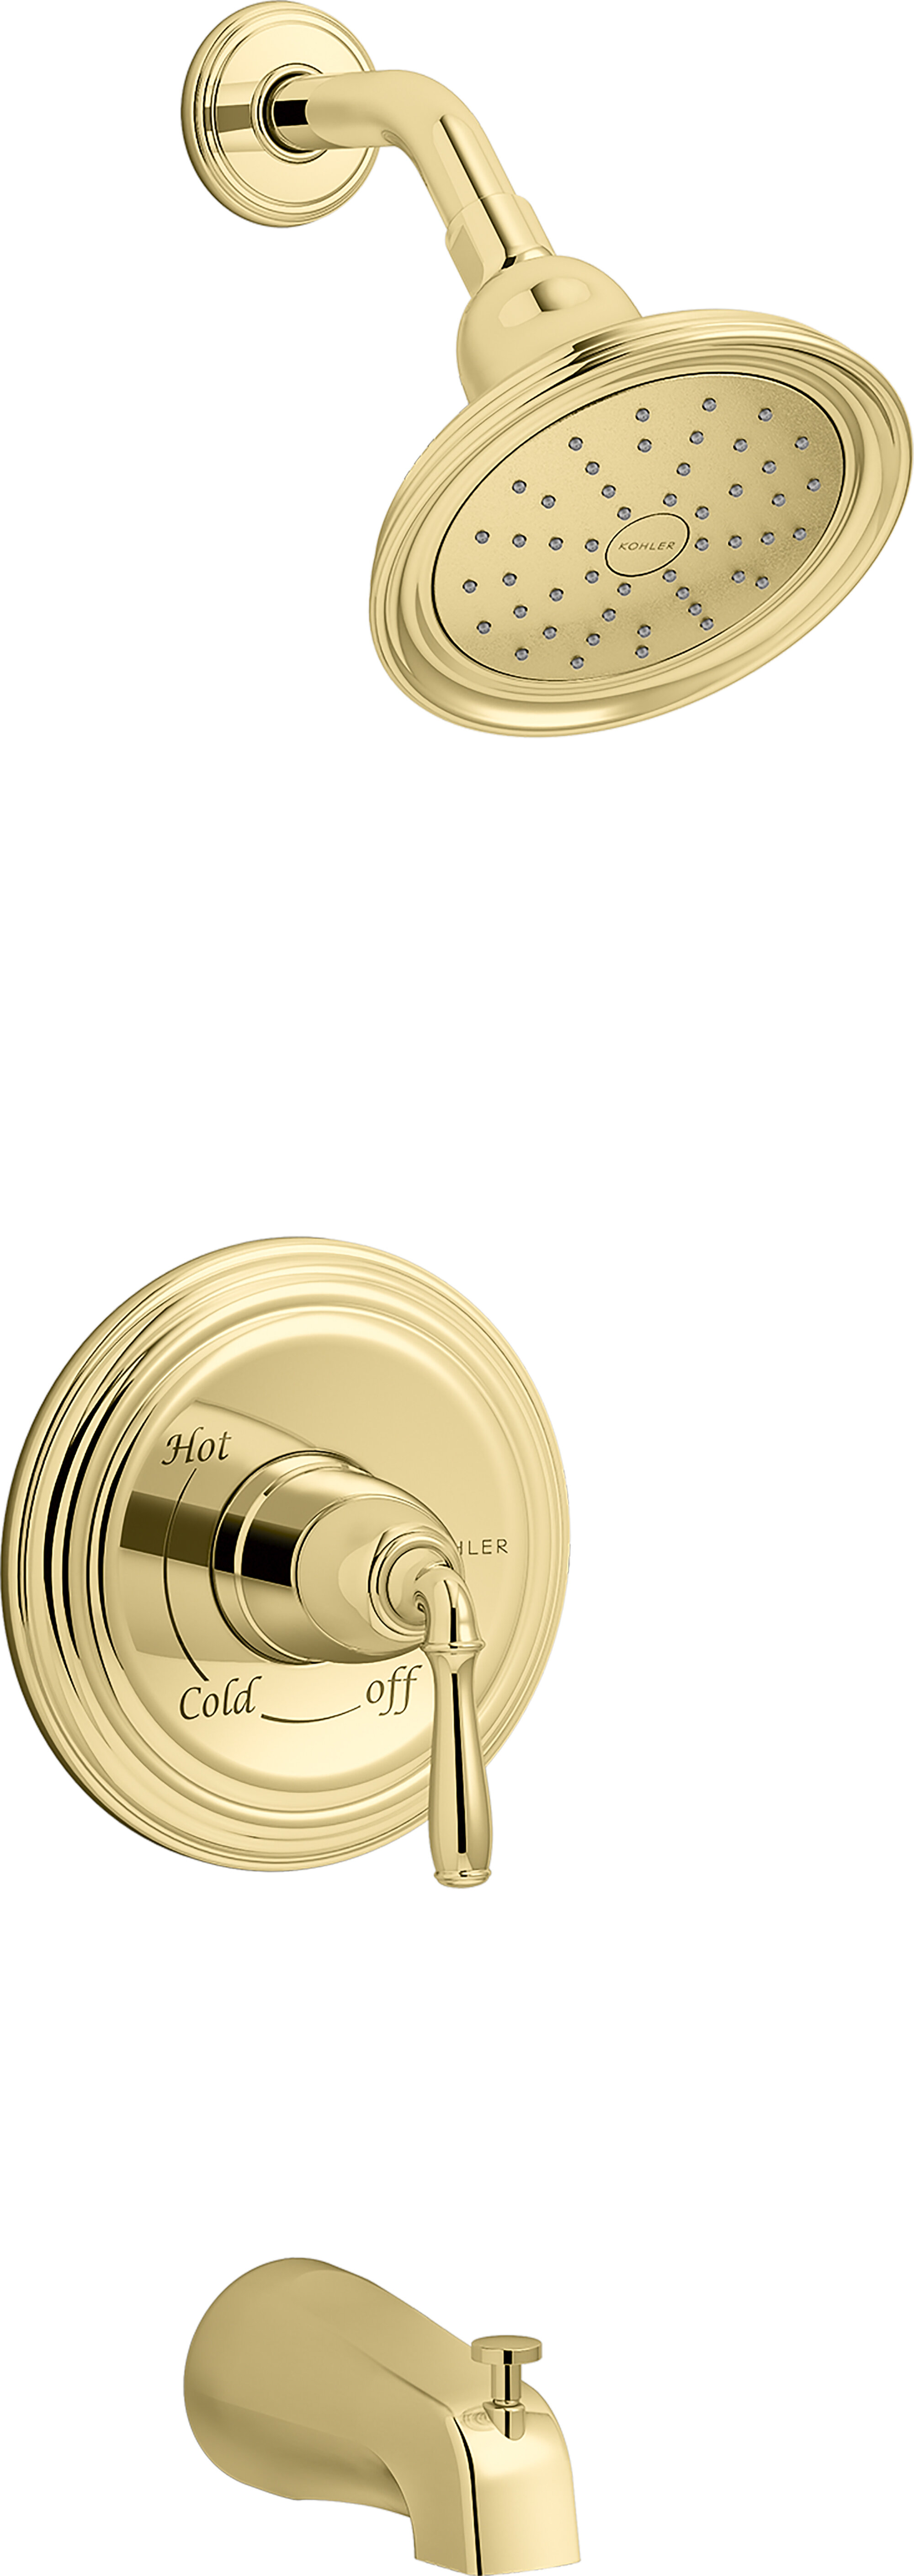 Polished Brass Kohler Shower Faucets Systems You Ll Love In 2021 Wayfair